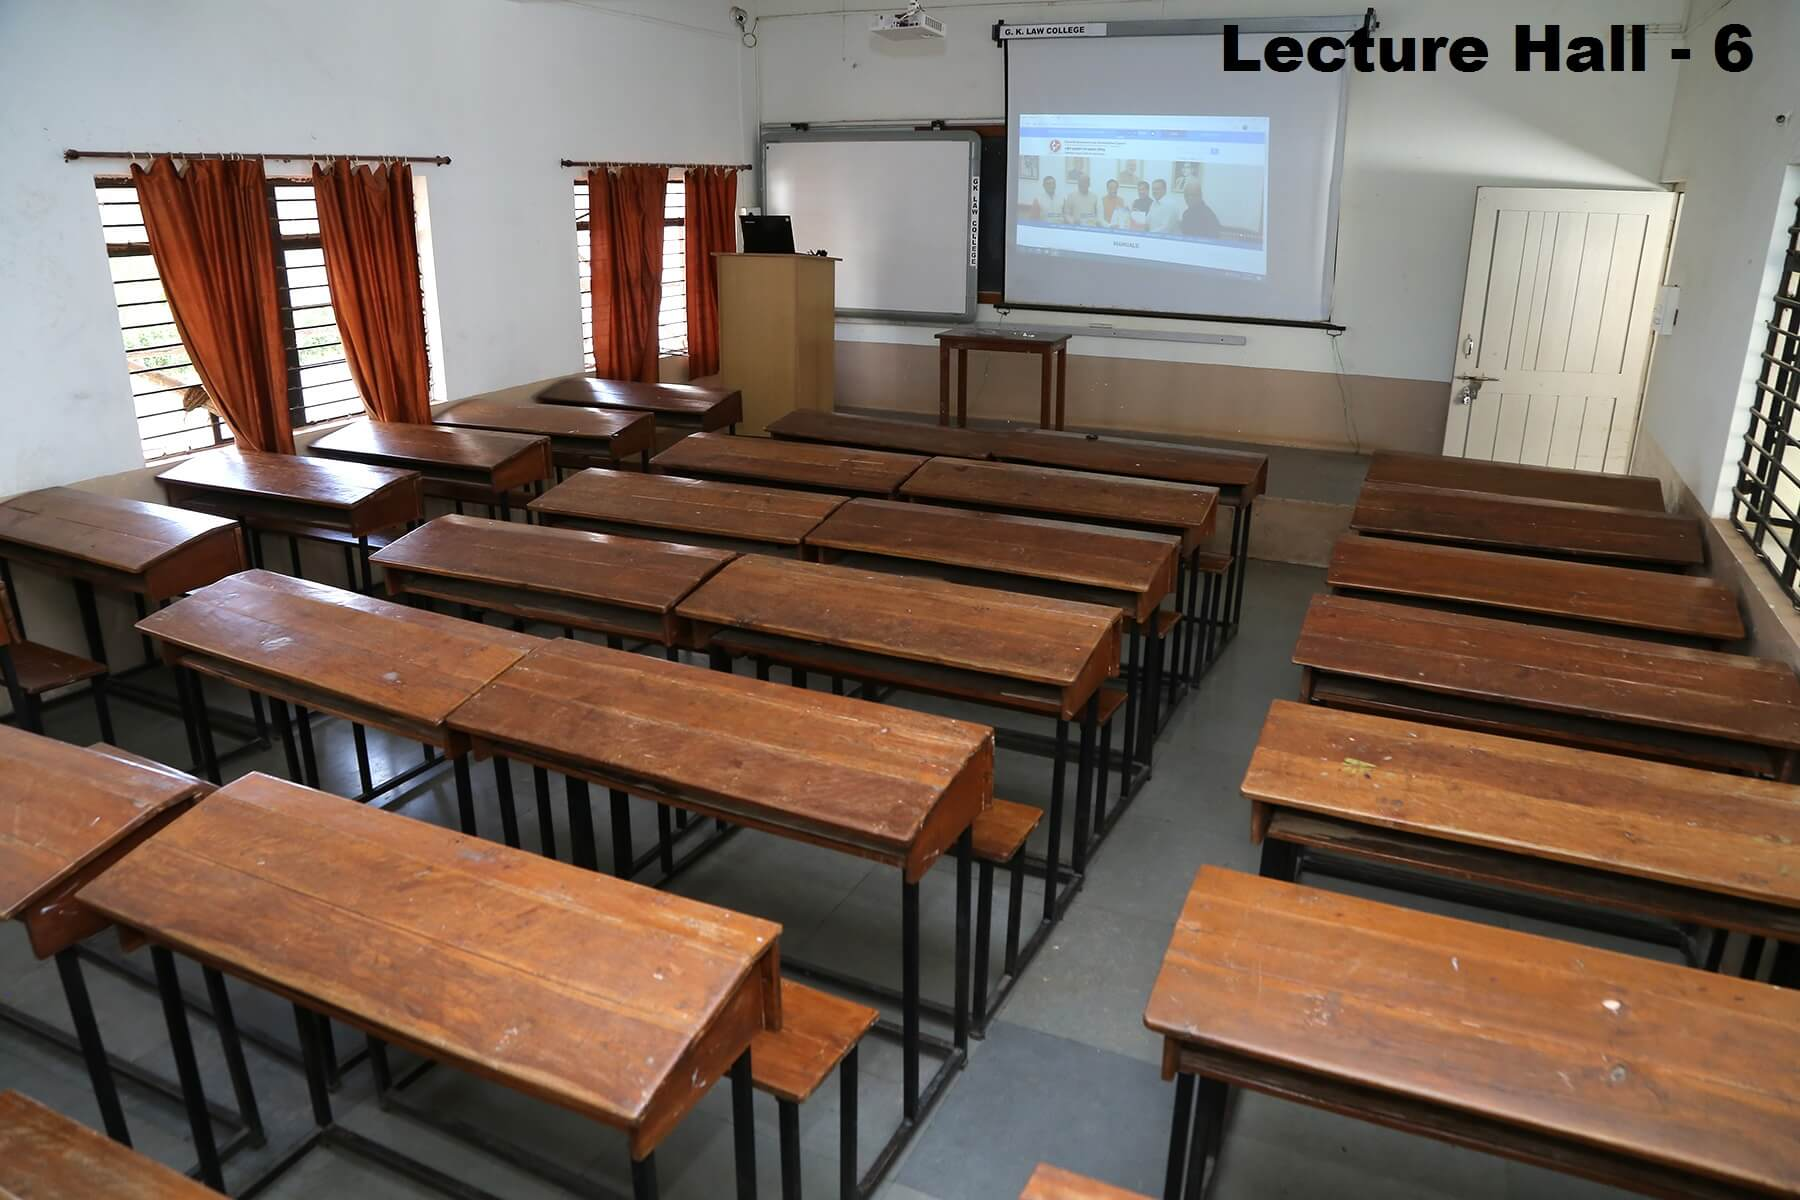 lecturer-hall5